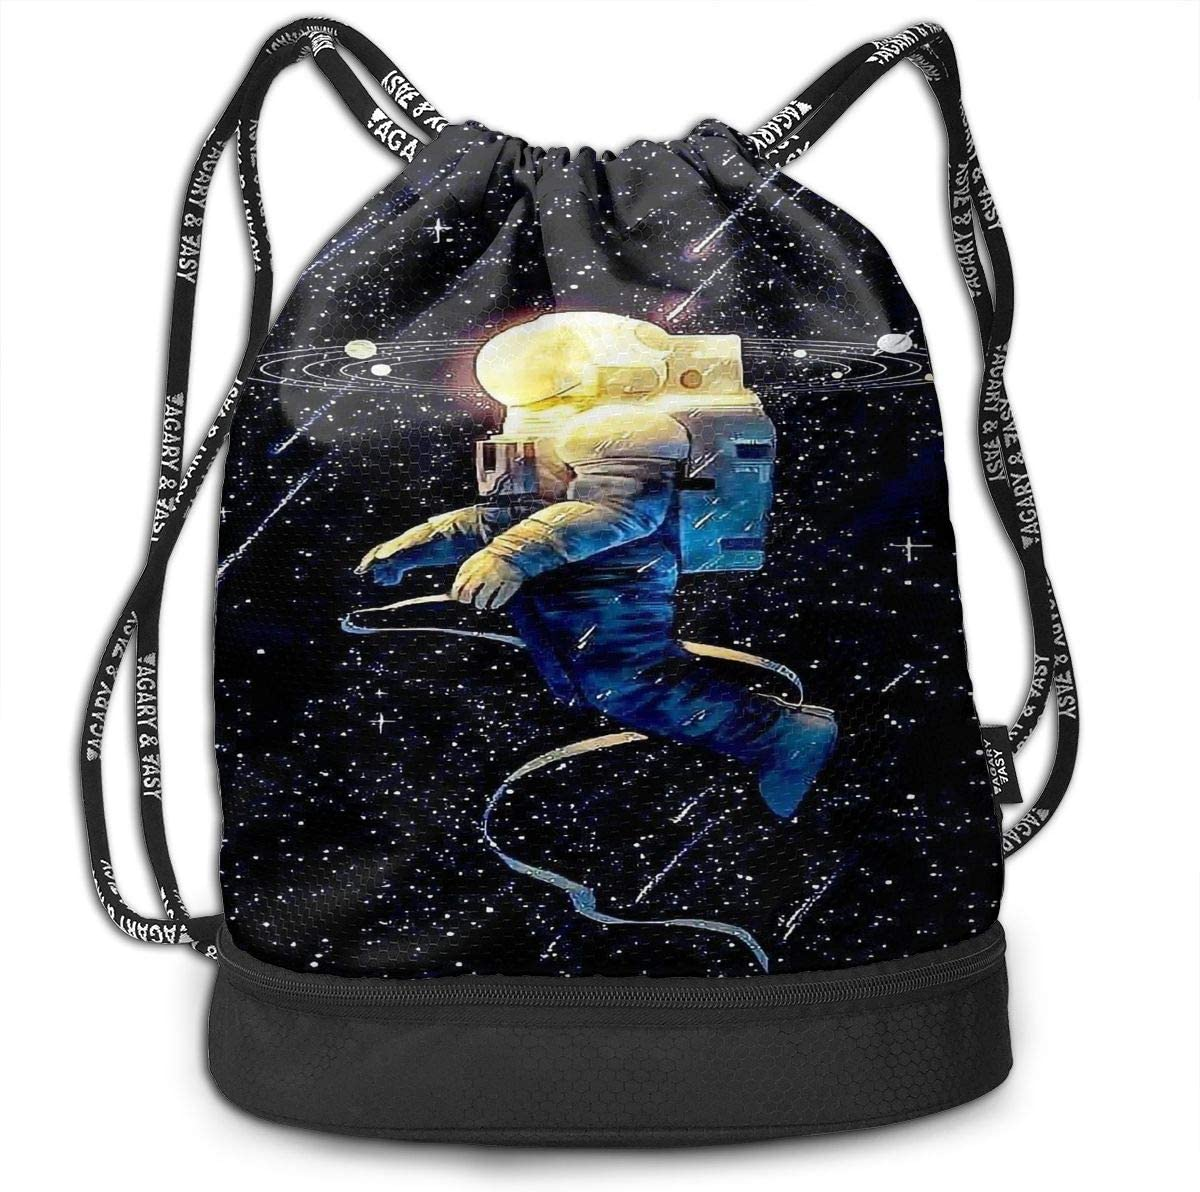 Drawstring Backpack Astronaut Space Planet Galaxy Bags